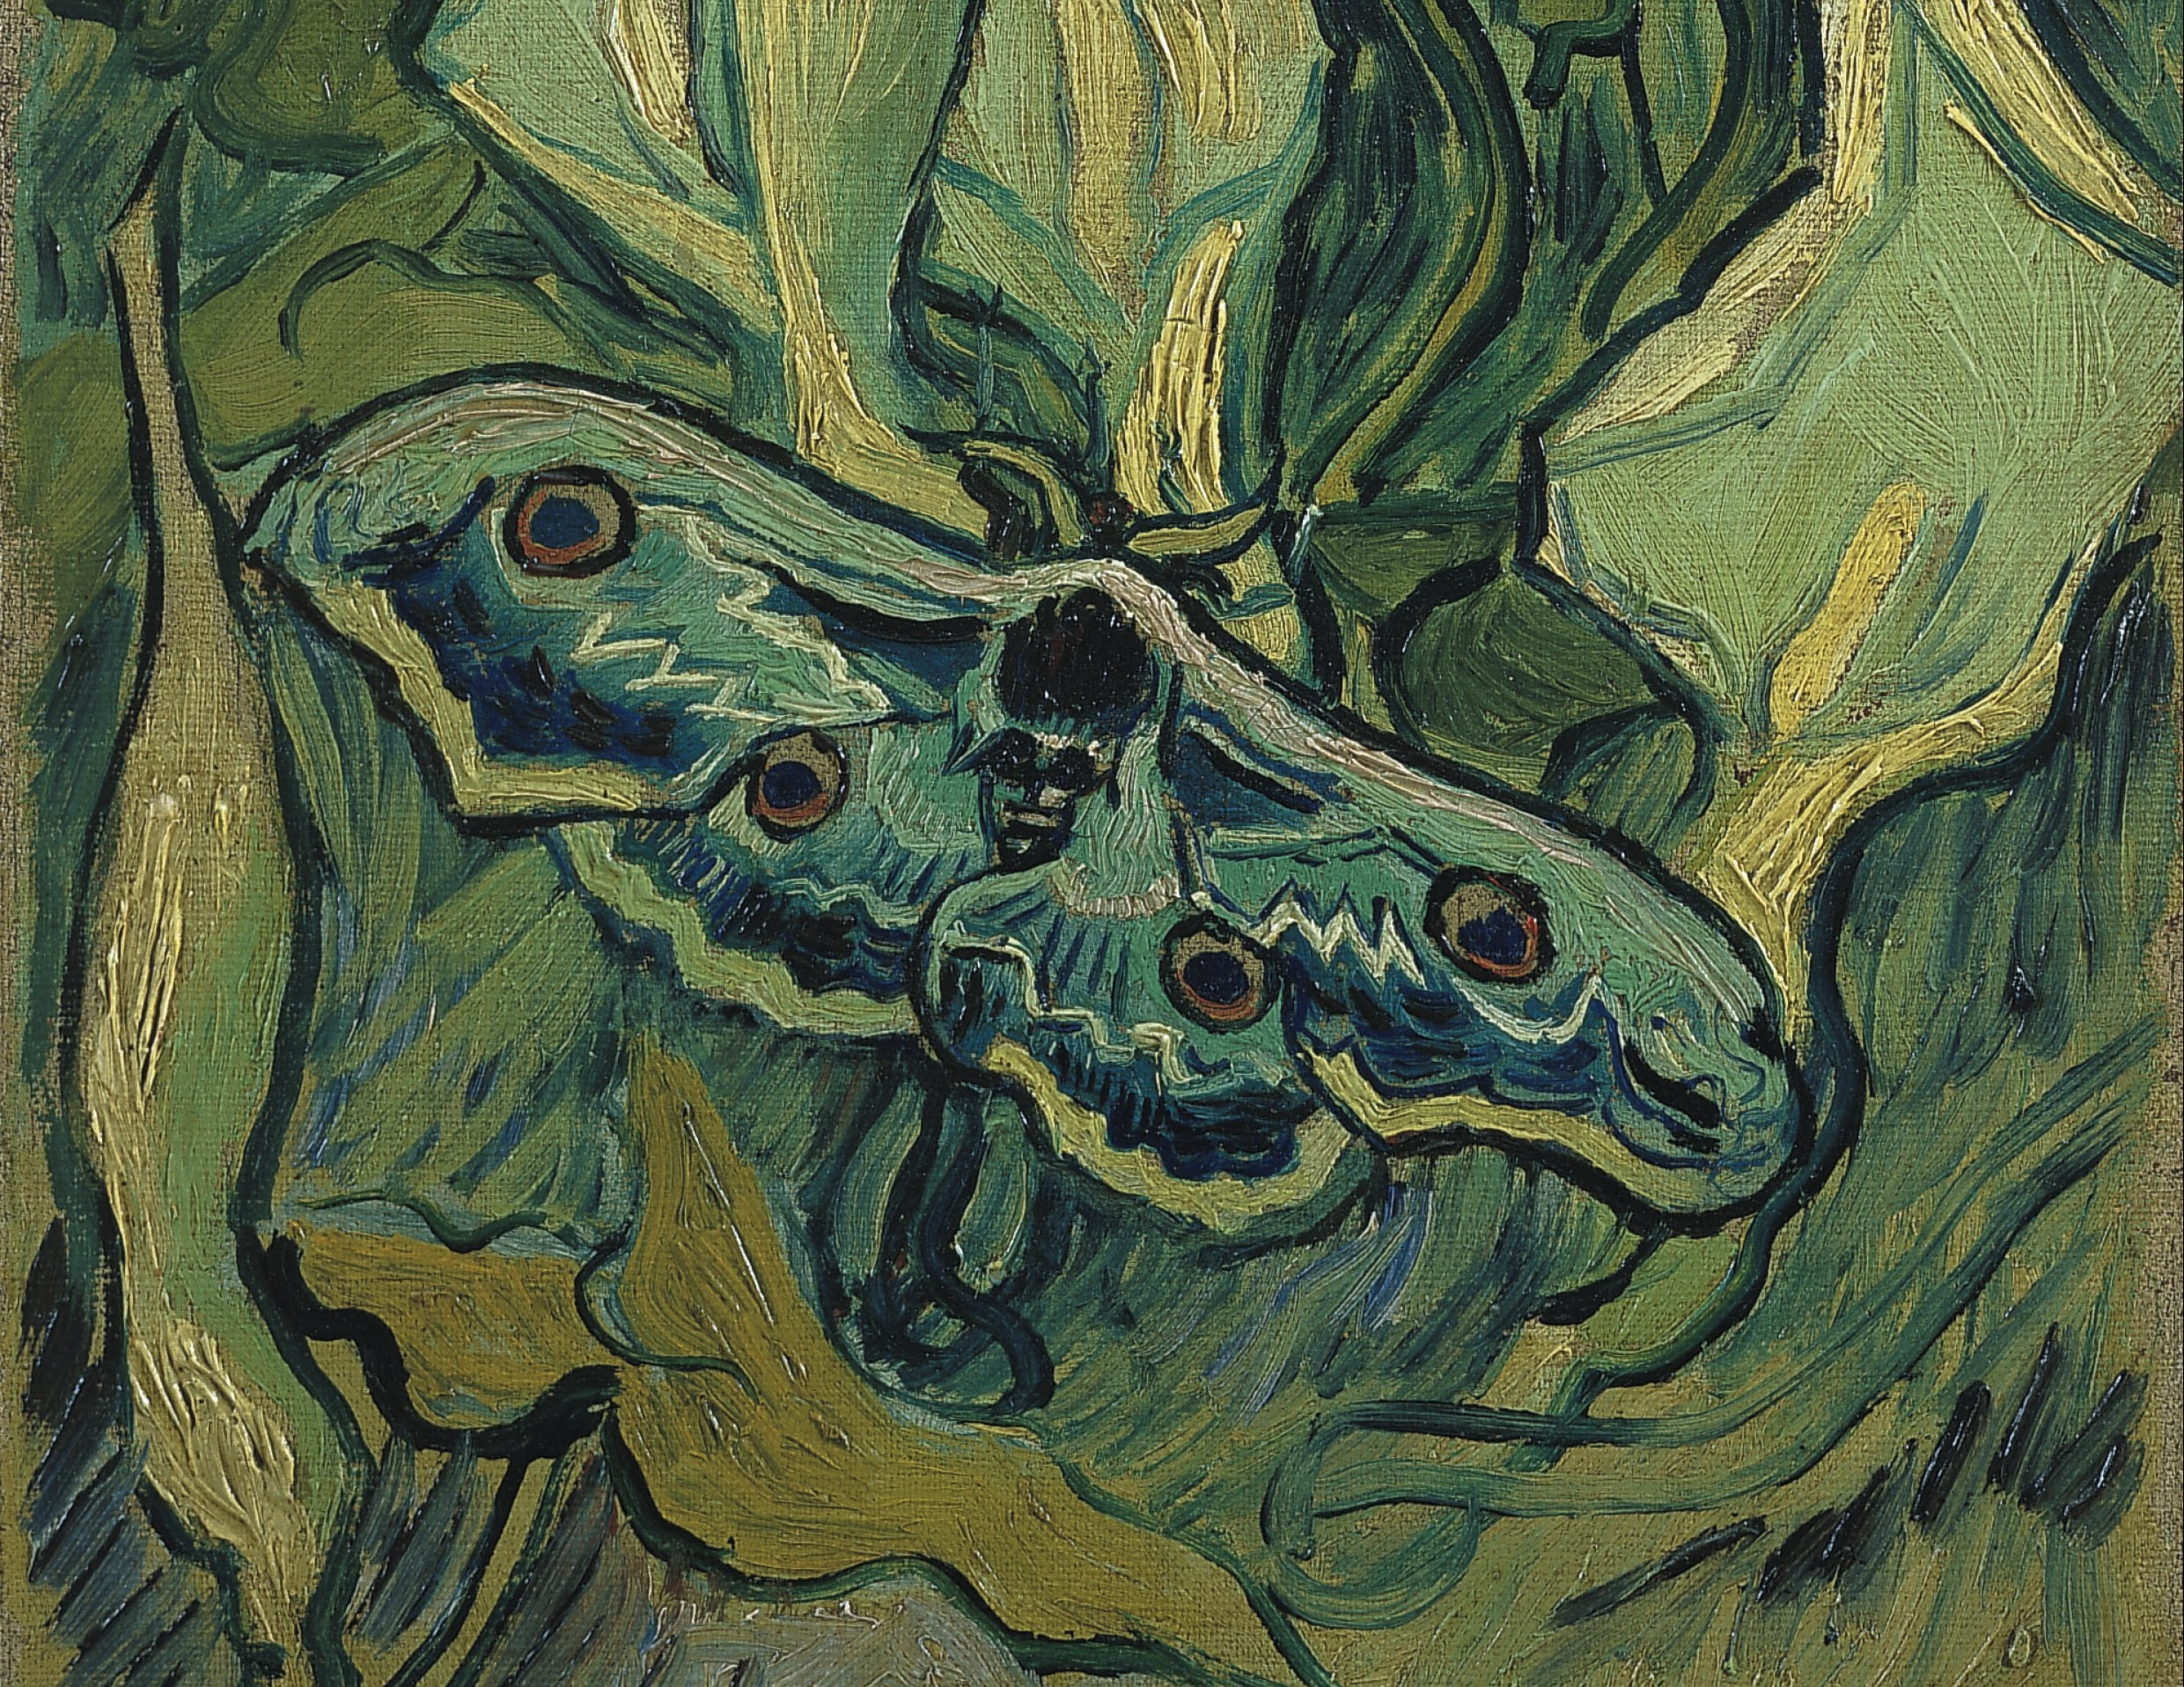 romantic poets and vincent van gogh essay The moths in the orchard squeal with each pass of the mistral wind yet the  reapers and their scythes, out beyond the pear trees, slay wheat in sure columns.